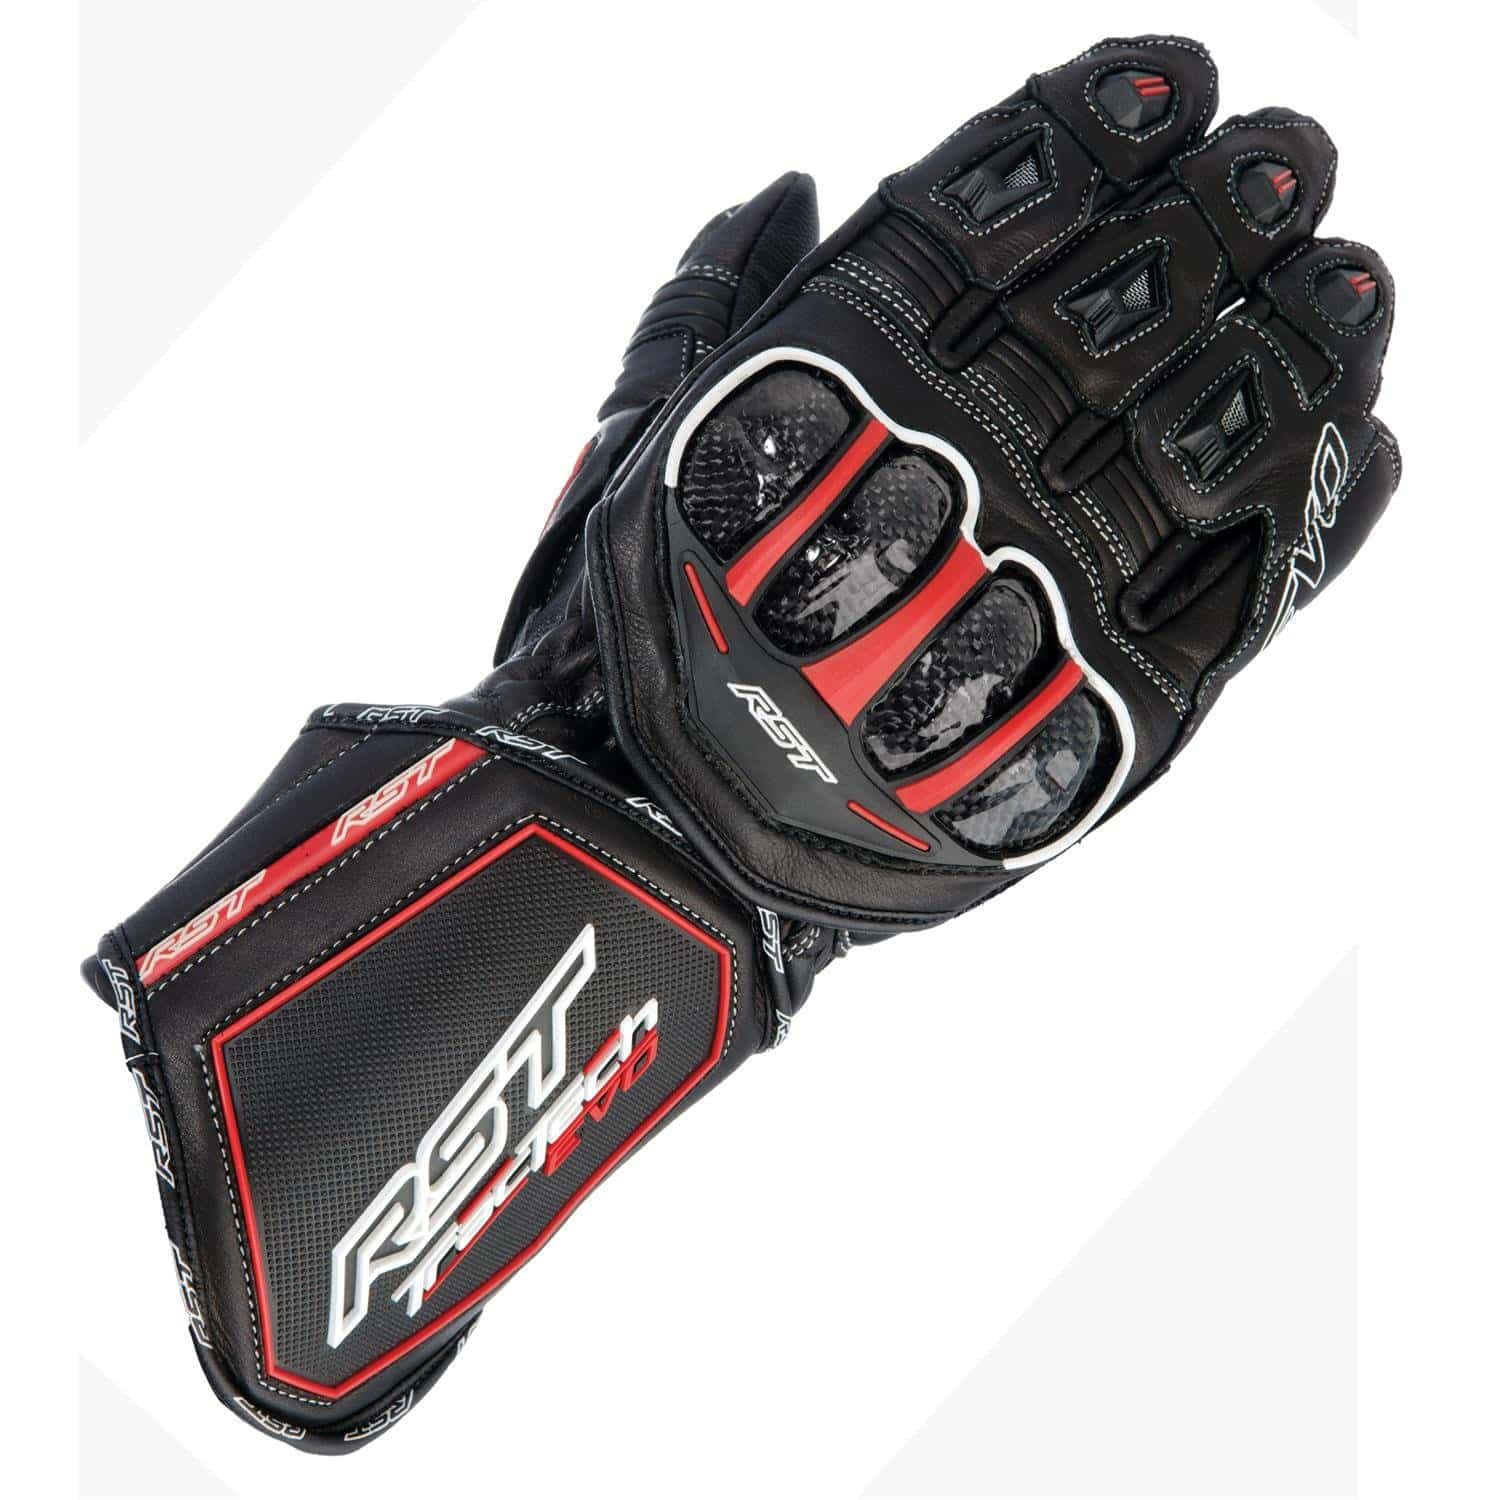 What Size Motorcycle Gloves Do I Need?